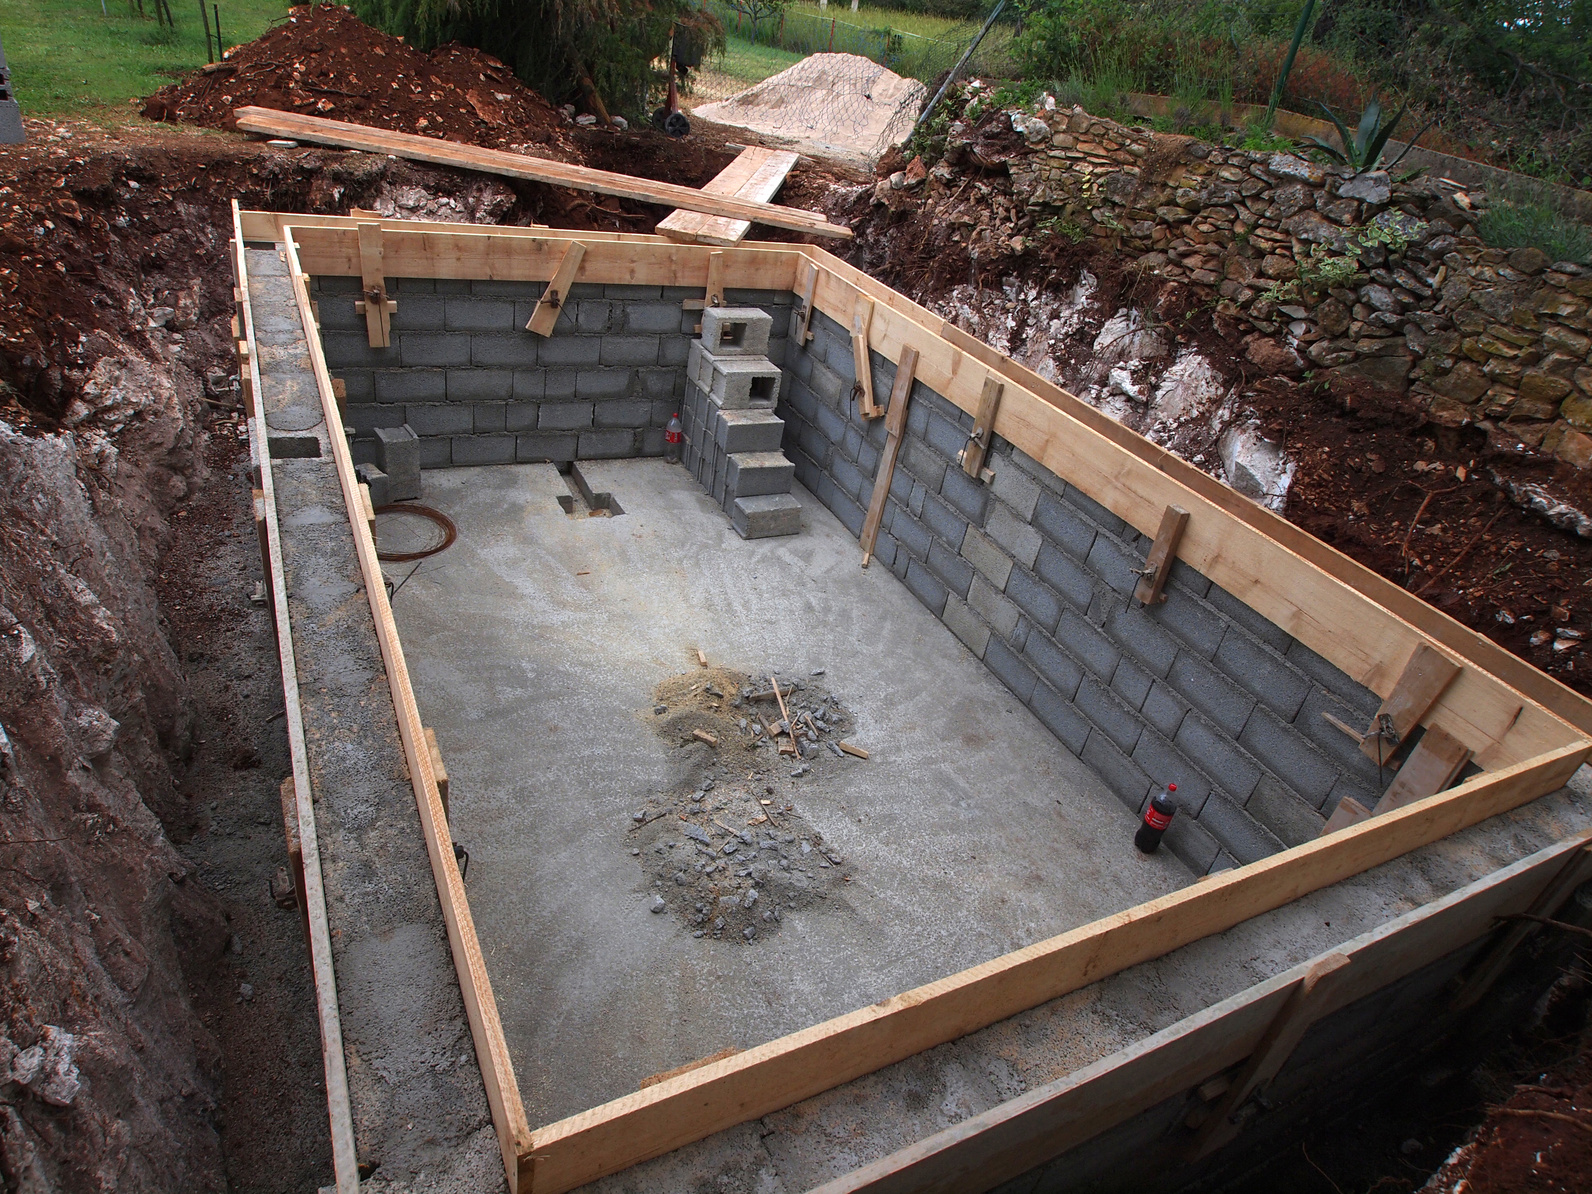 Parfait Cosntruction Du0027une Piscine Conception